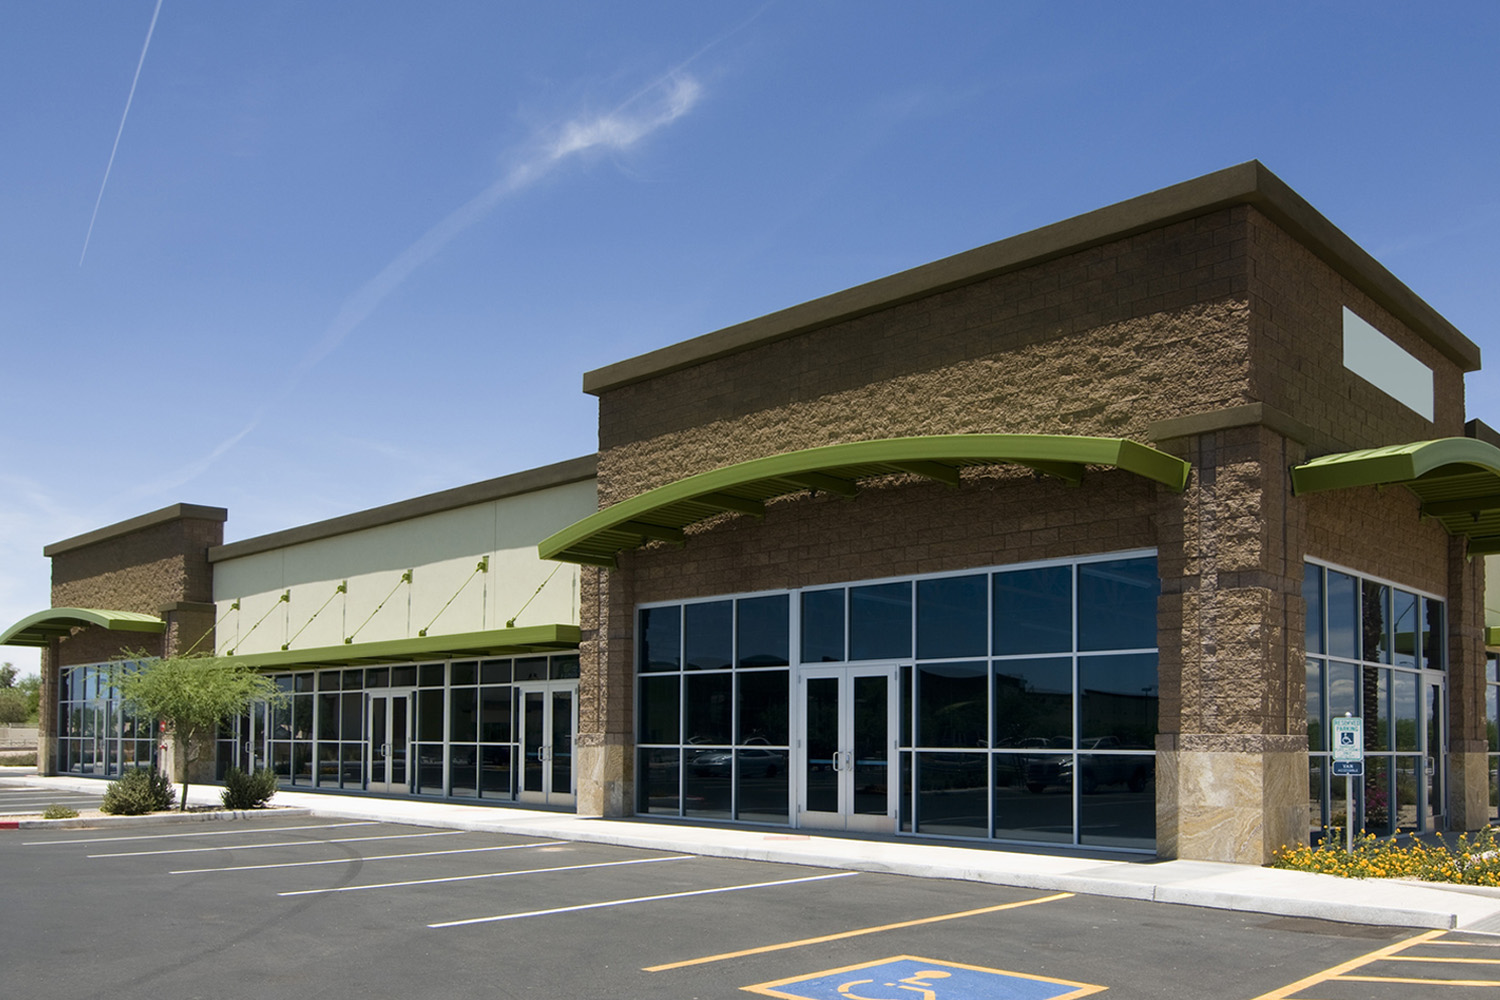 12 Commercial Retail Buildings Design Images Small